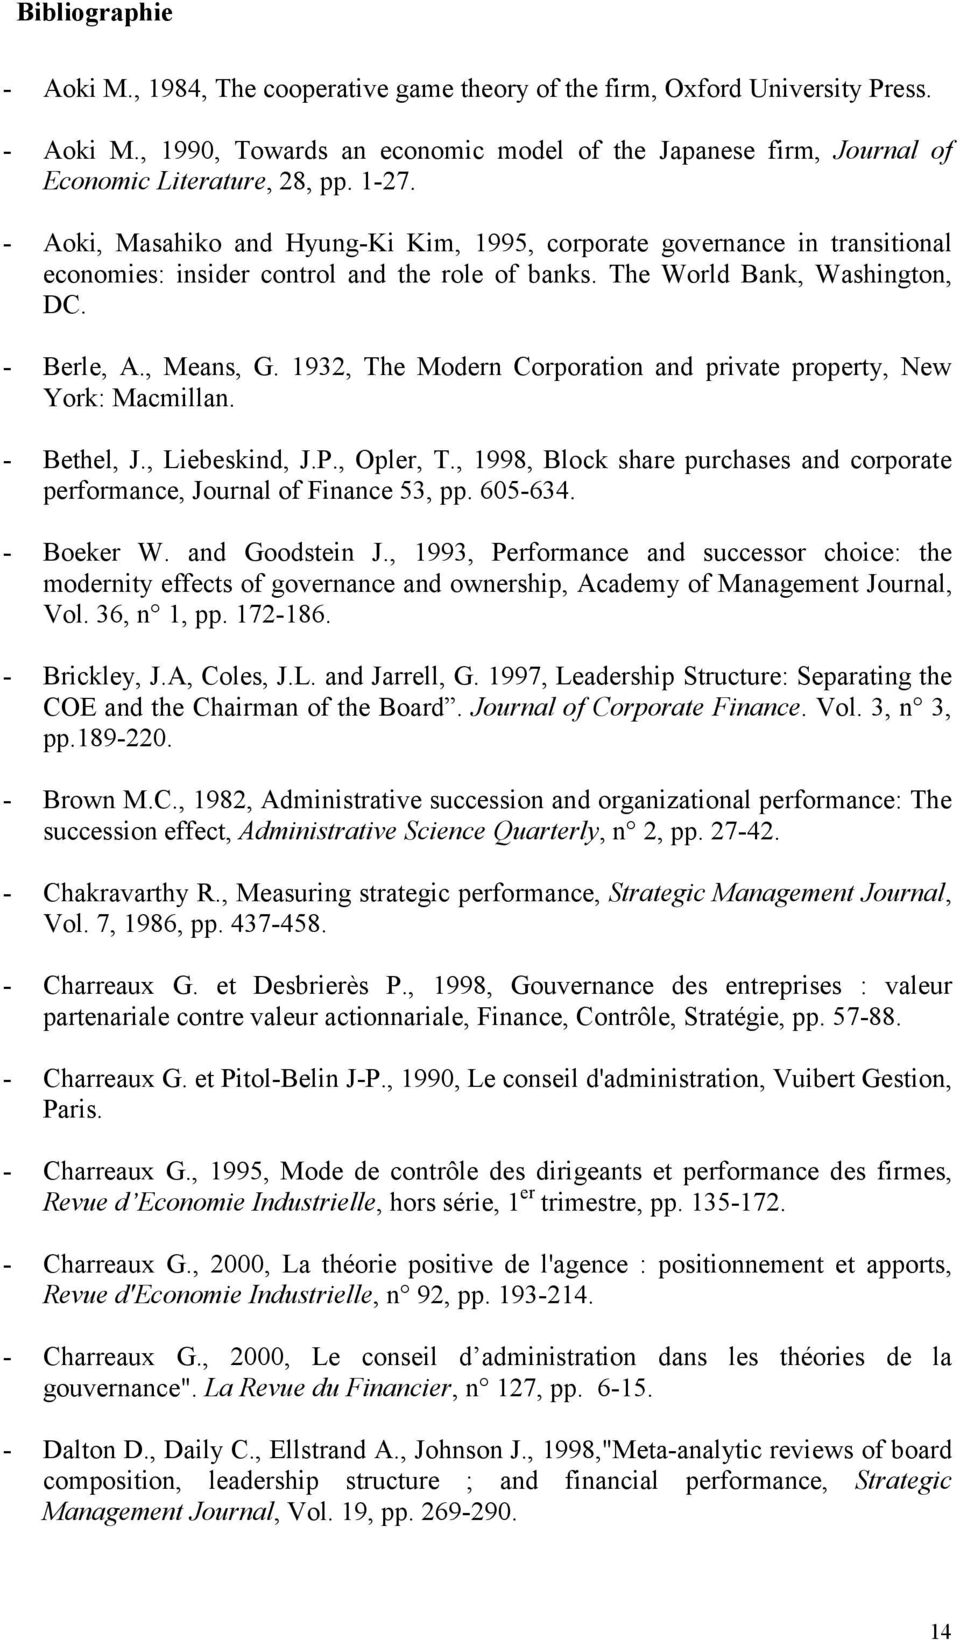 1932, The Modern Corporation and private property, New York: Macmillan. - Bethel, J., Liebeskind, J.P., Opler, T., 1998, Block share purchases and corporate performance, Journal of Finance 53, pp.